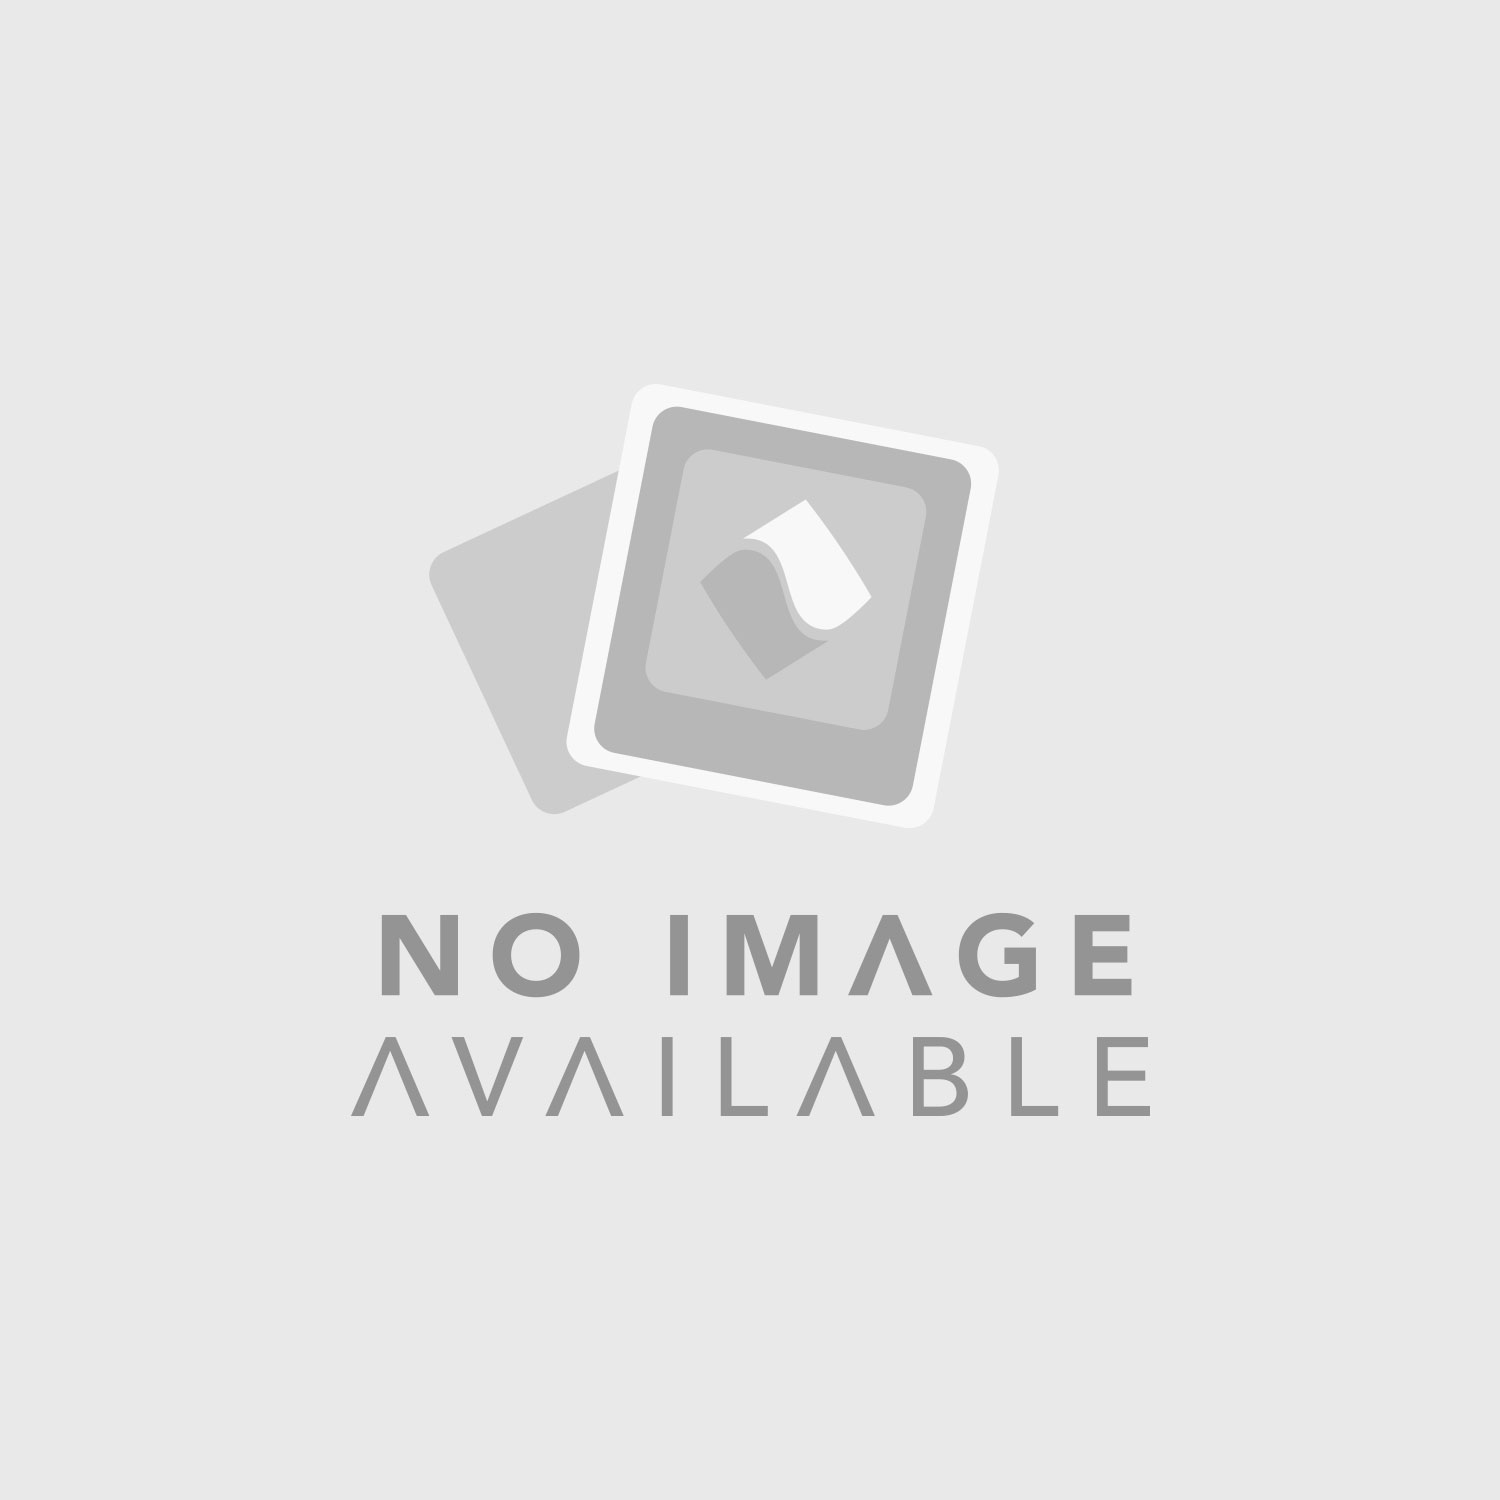 Ushio 1000085 BTN Replacement Lamp Bulb (750W / 120V)